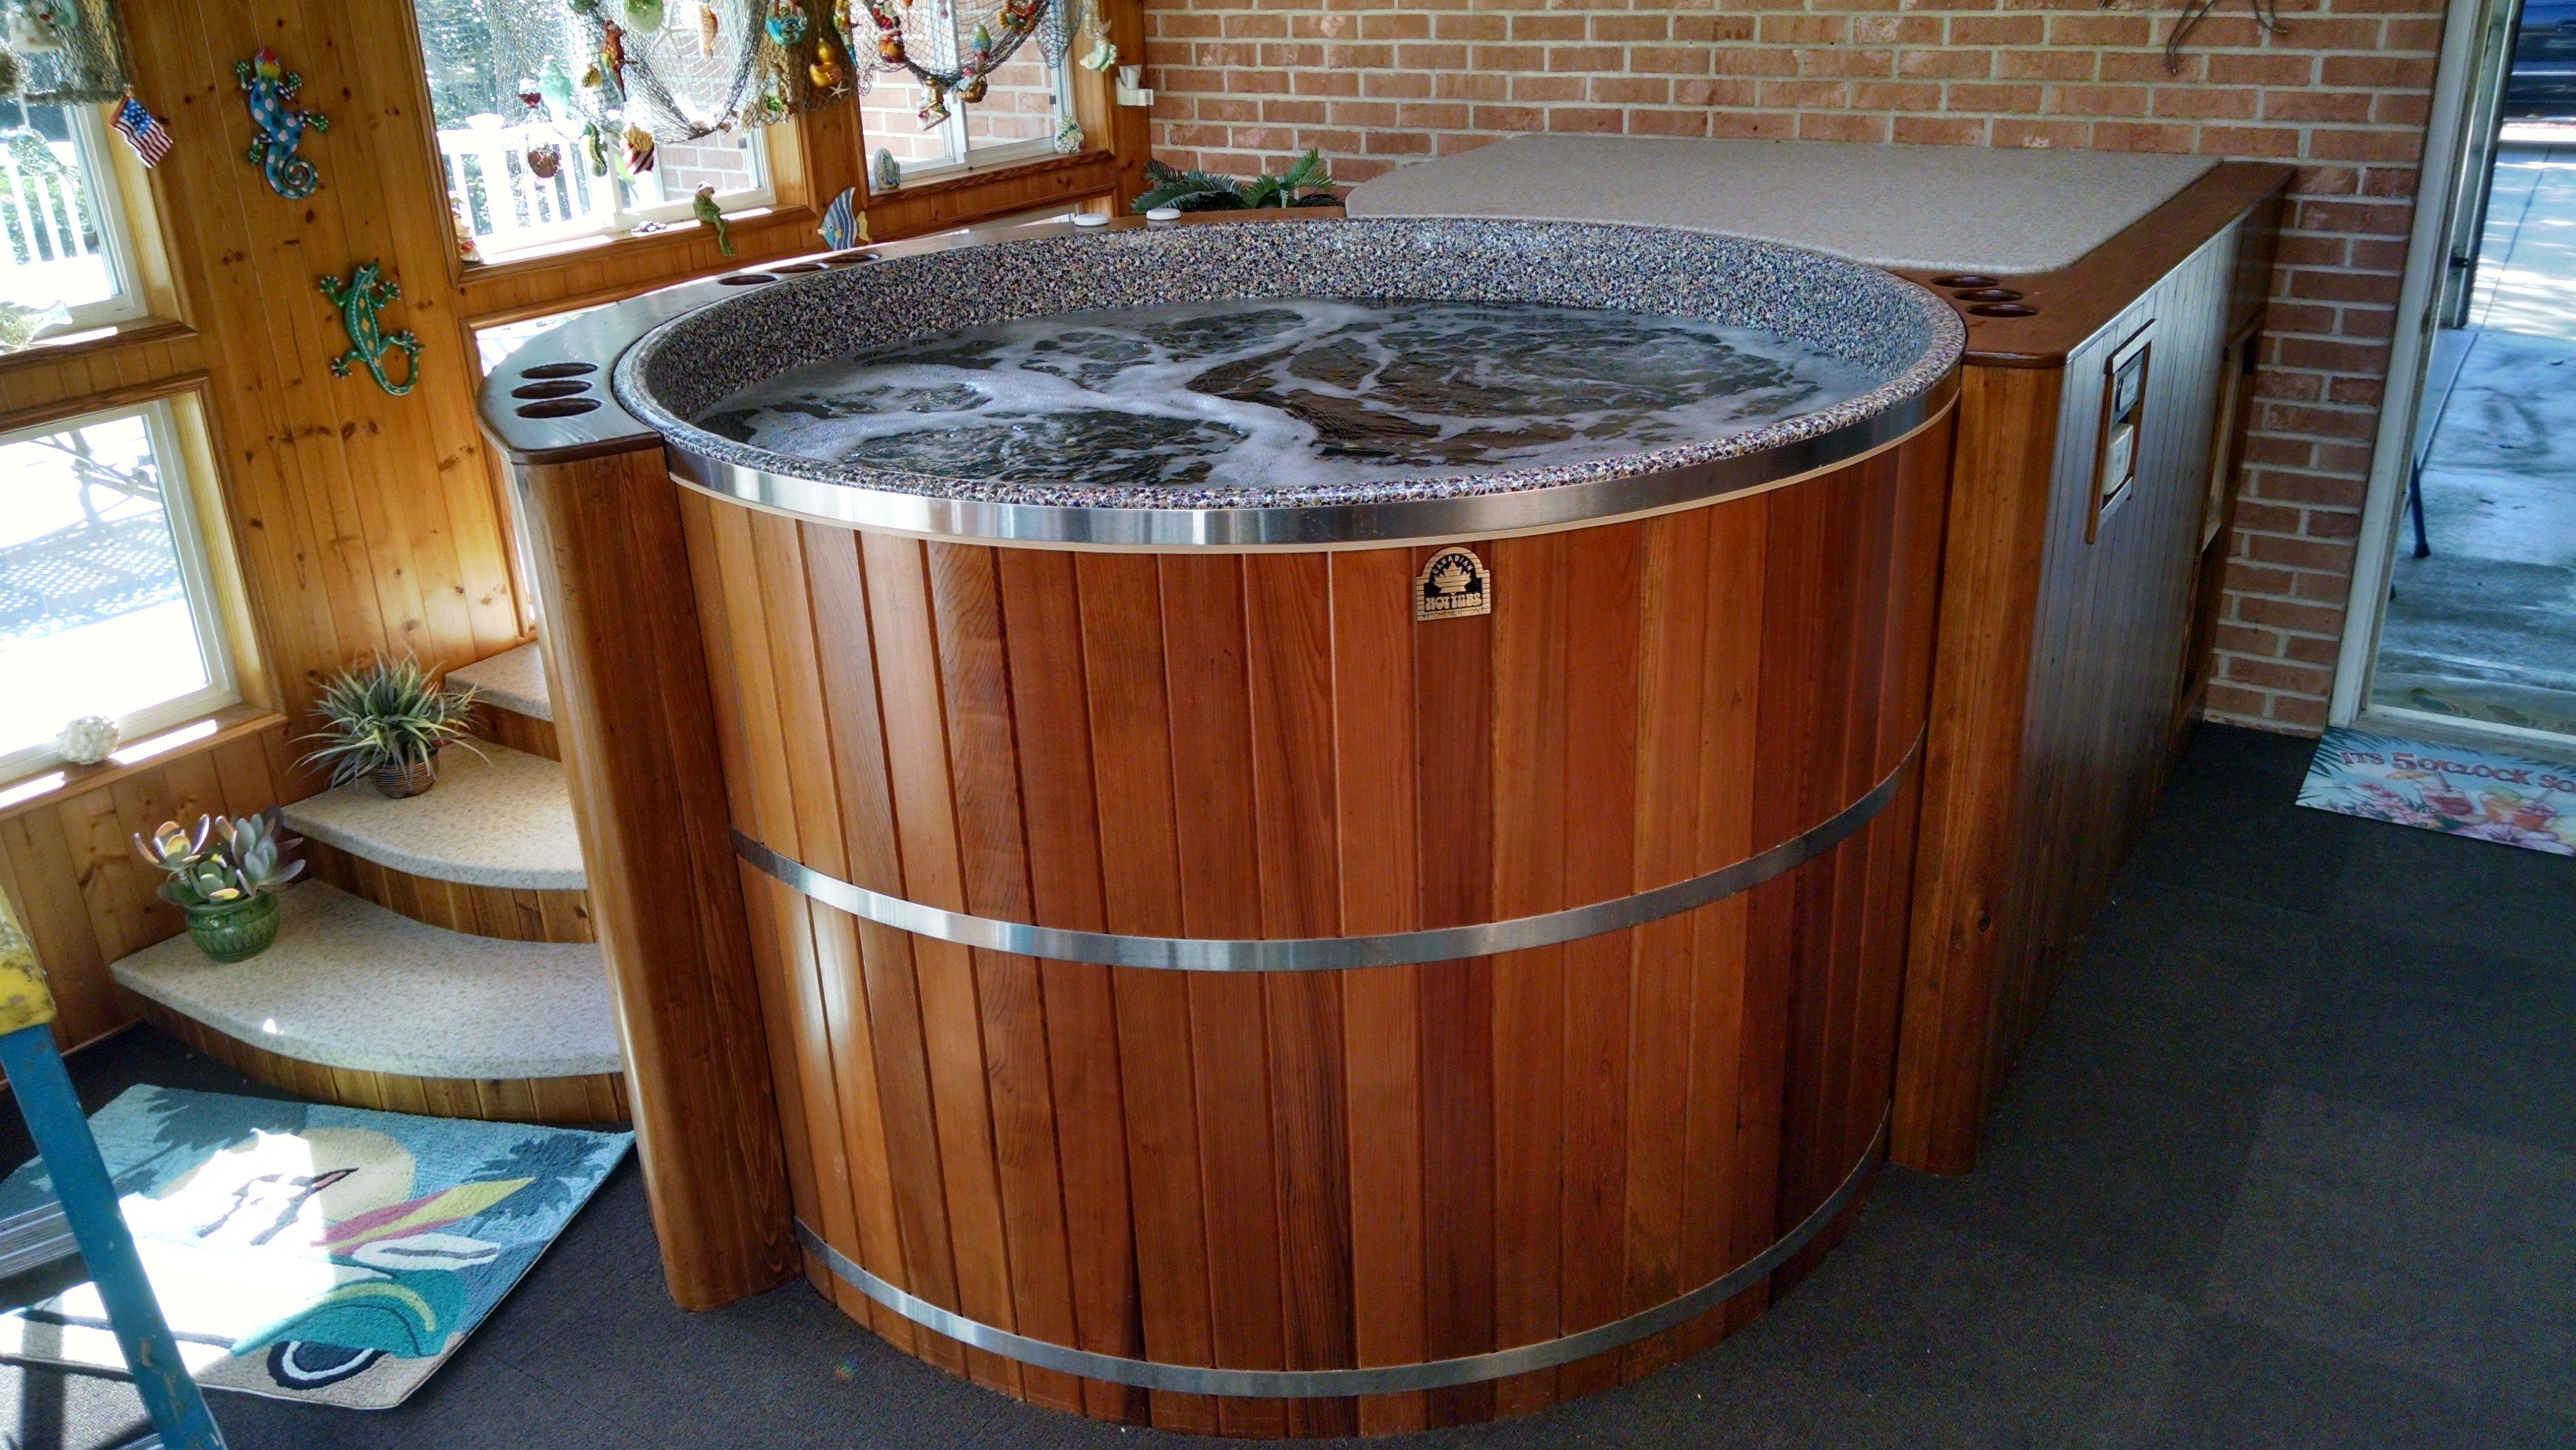 Prefer To Enjoy Your Hot Tub Indoors Our Cedar Hot Tub Kits Can Be Installed Almost Anywhere Cedar Hot Tub Hot Tub Tub